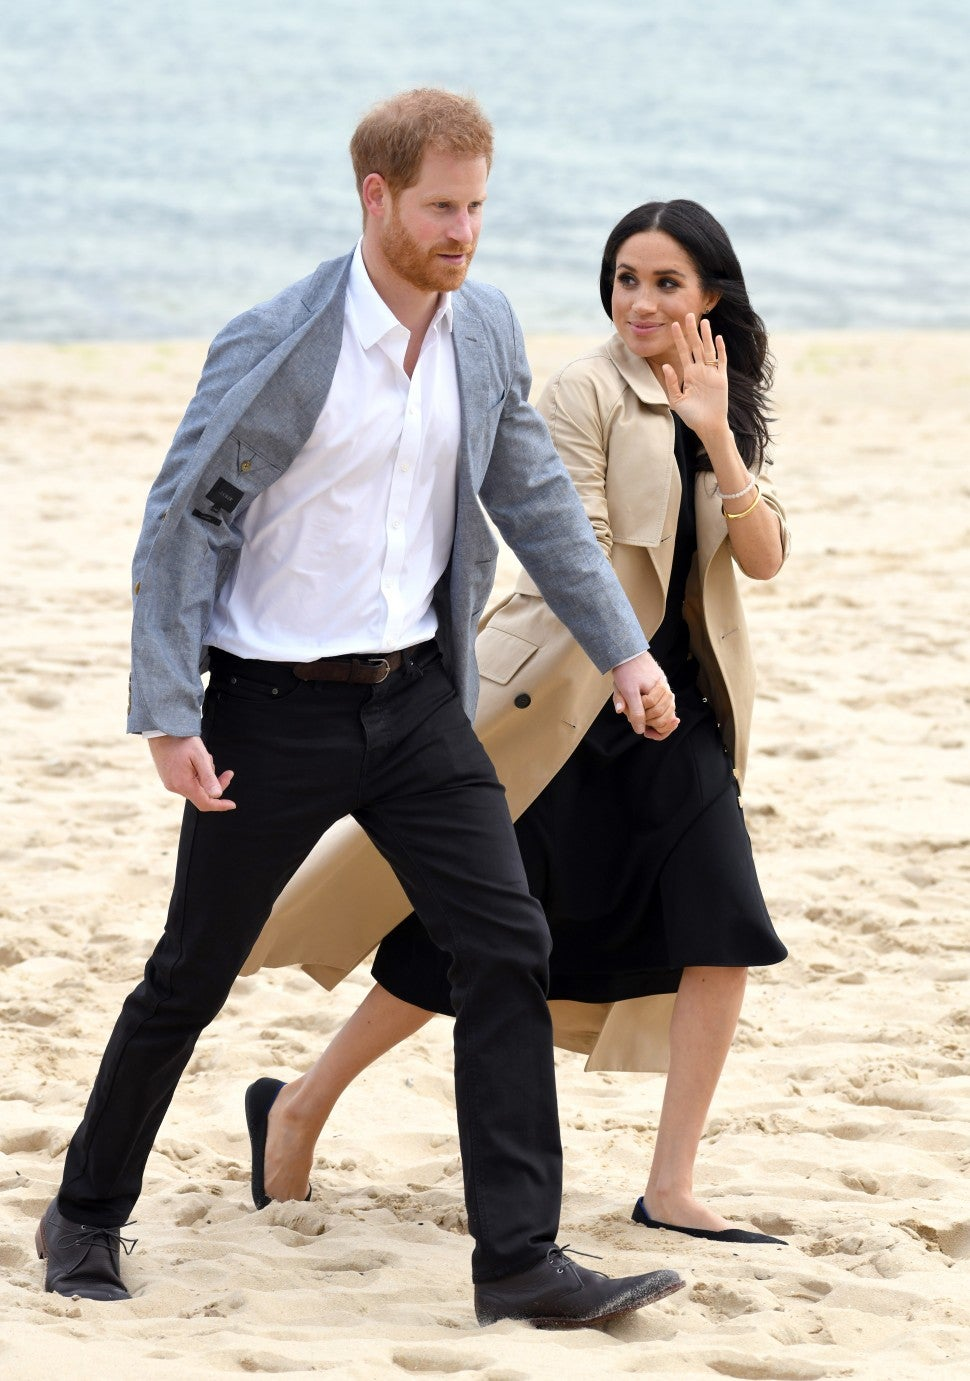 Meghan Markle and Prince Harry at beach